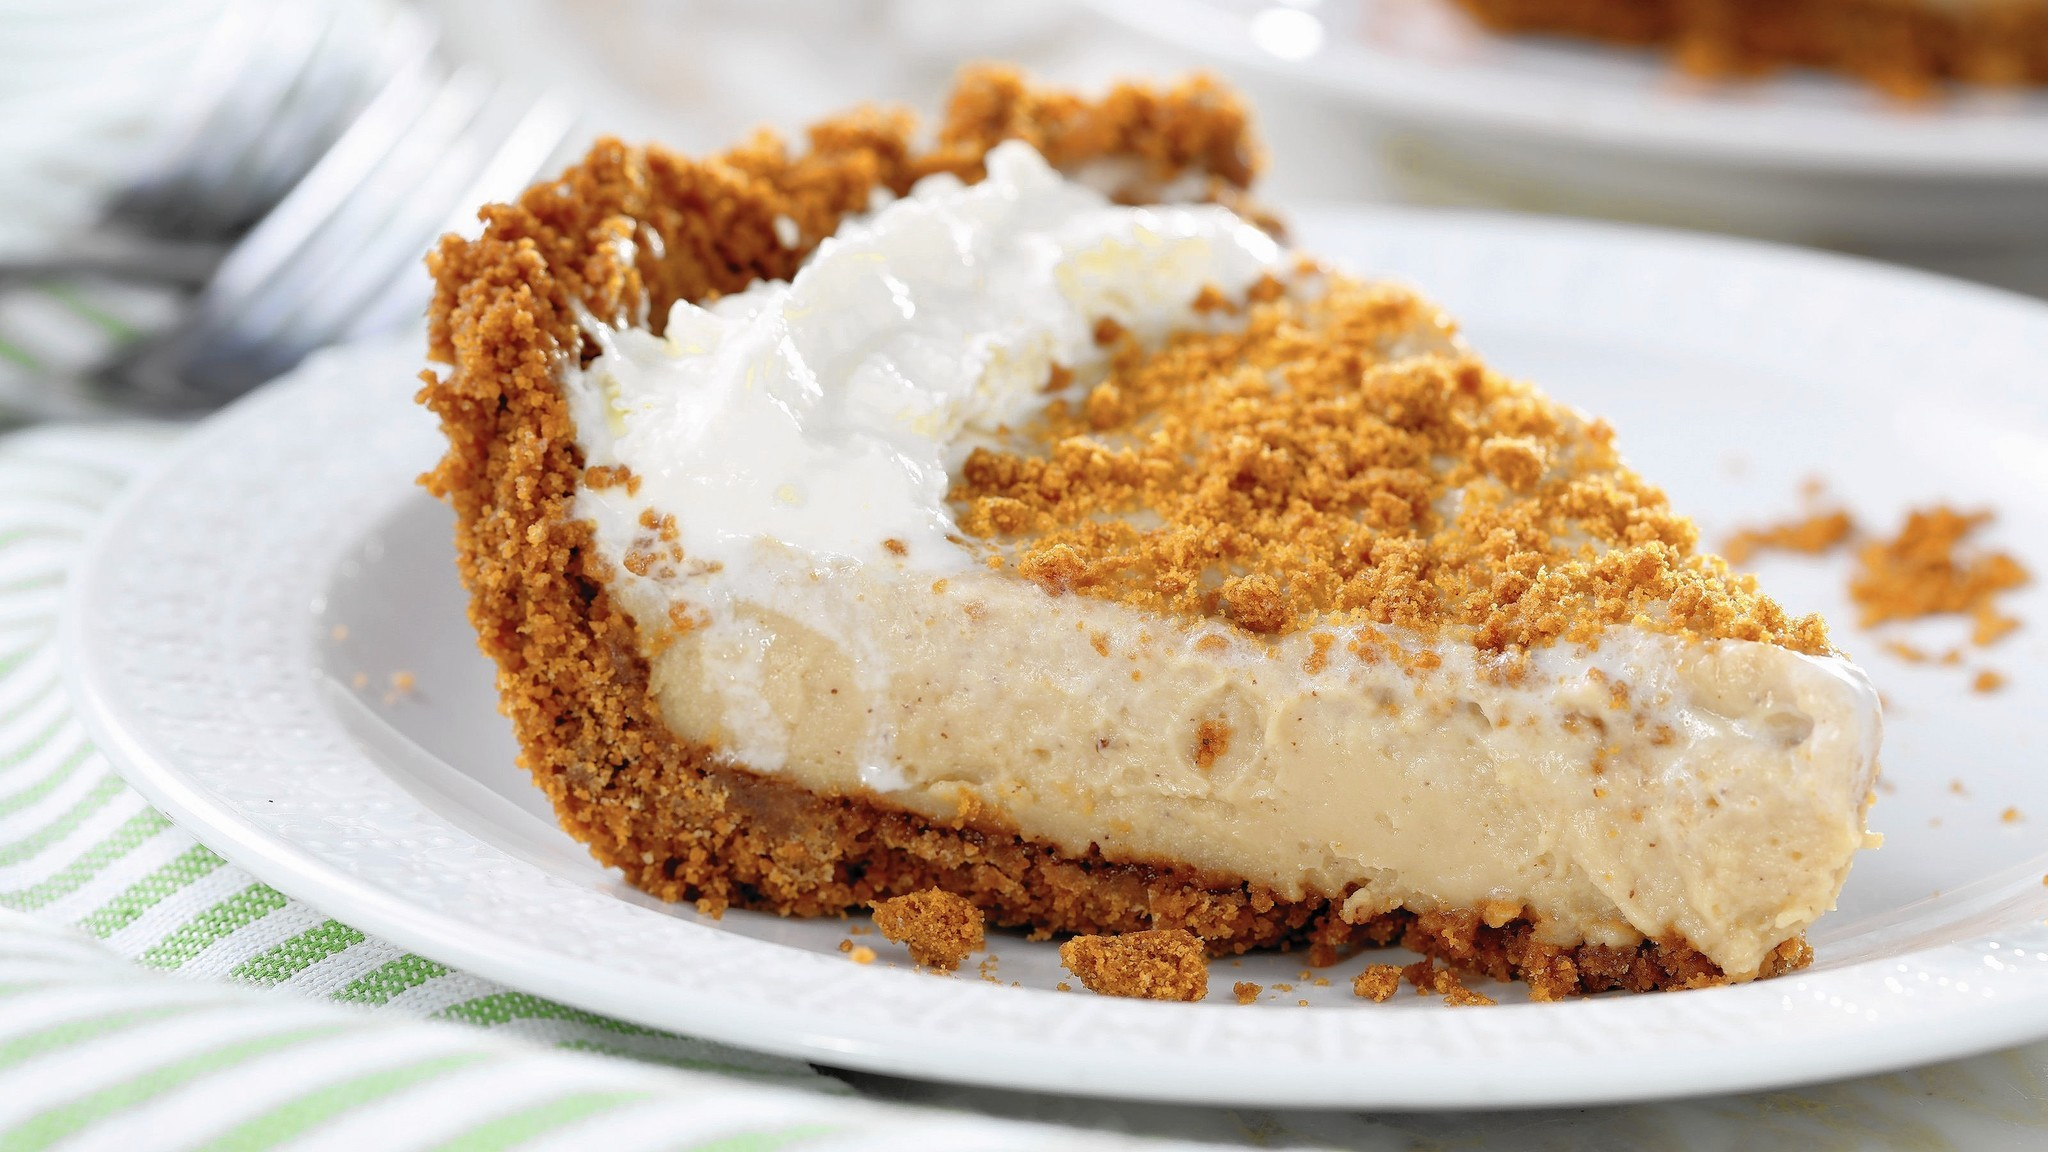 Butterscotch pie, always second fiddle, is a secret crowd pleaser